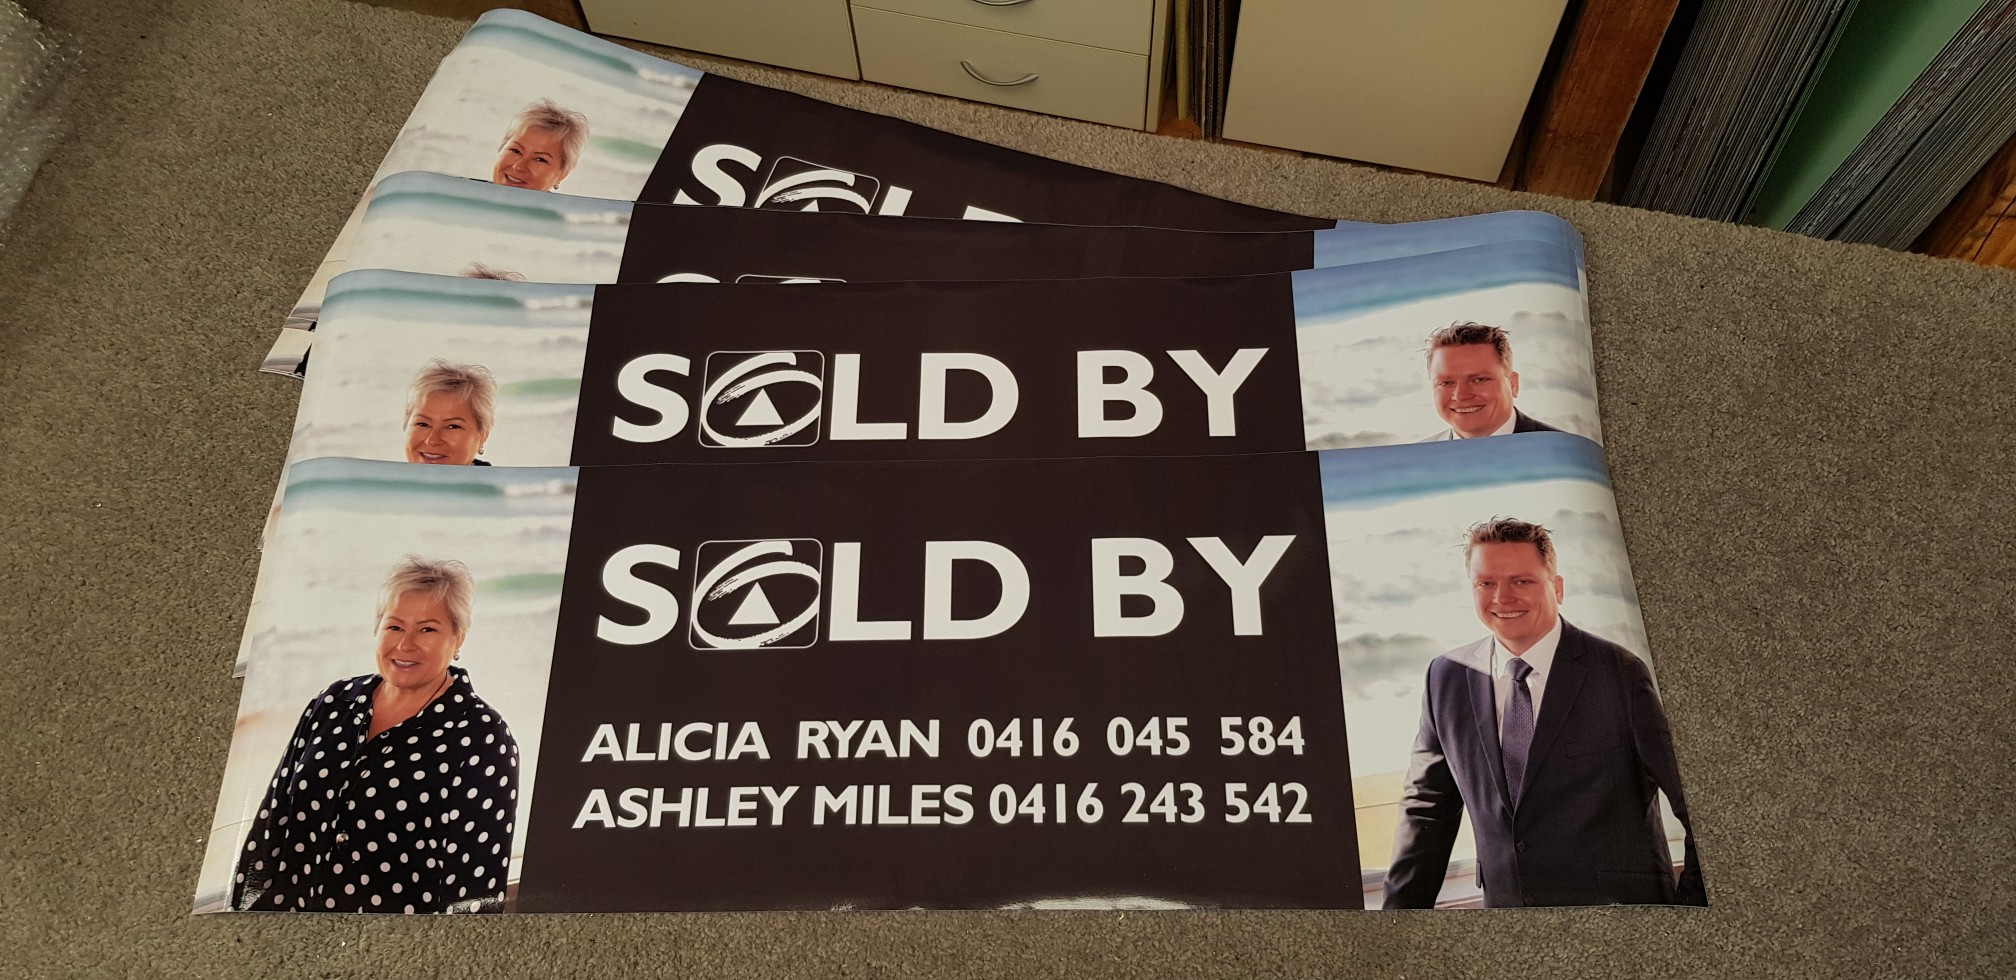 first-national-manly-prestige-900x300mm-sold-stickers.jpg